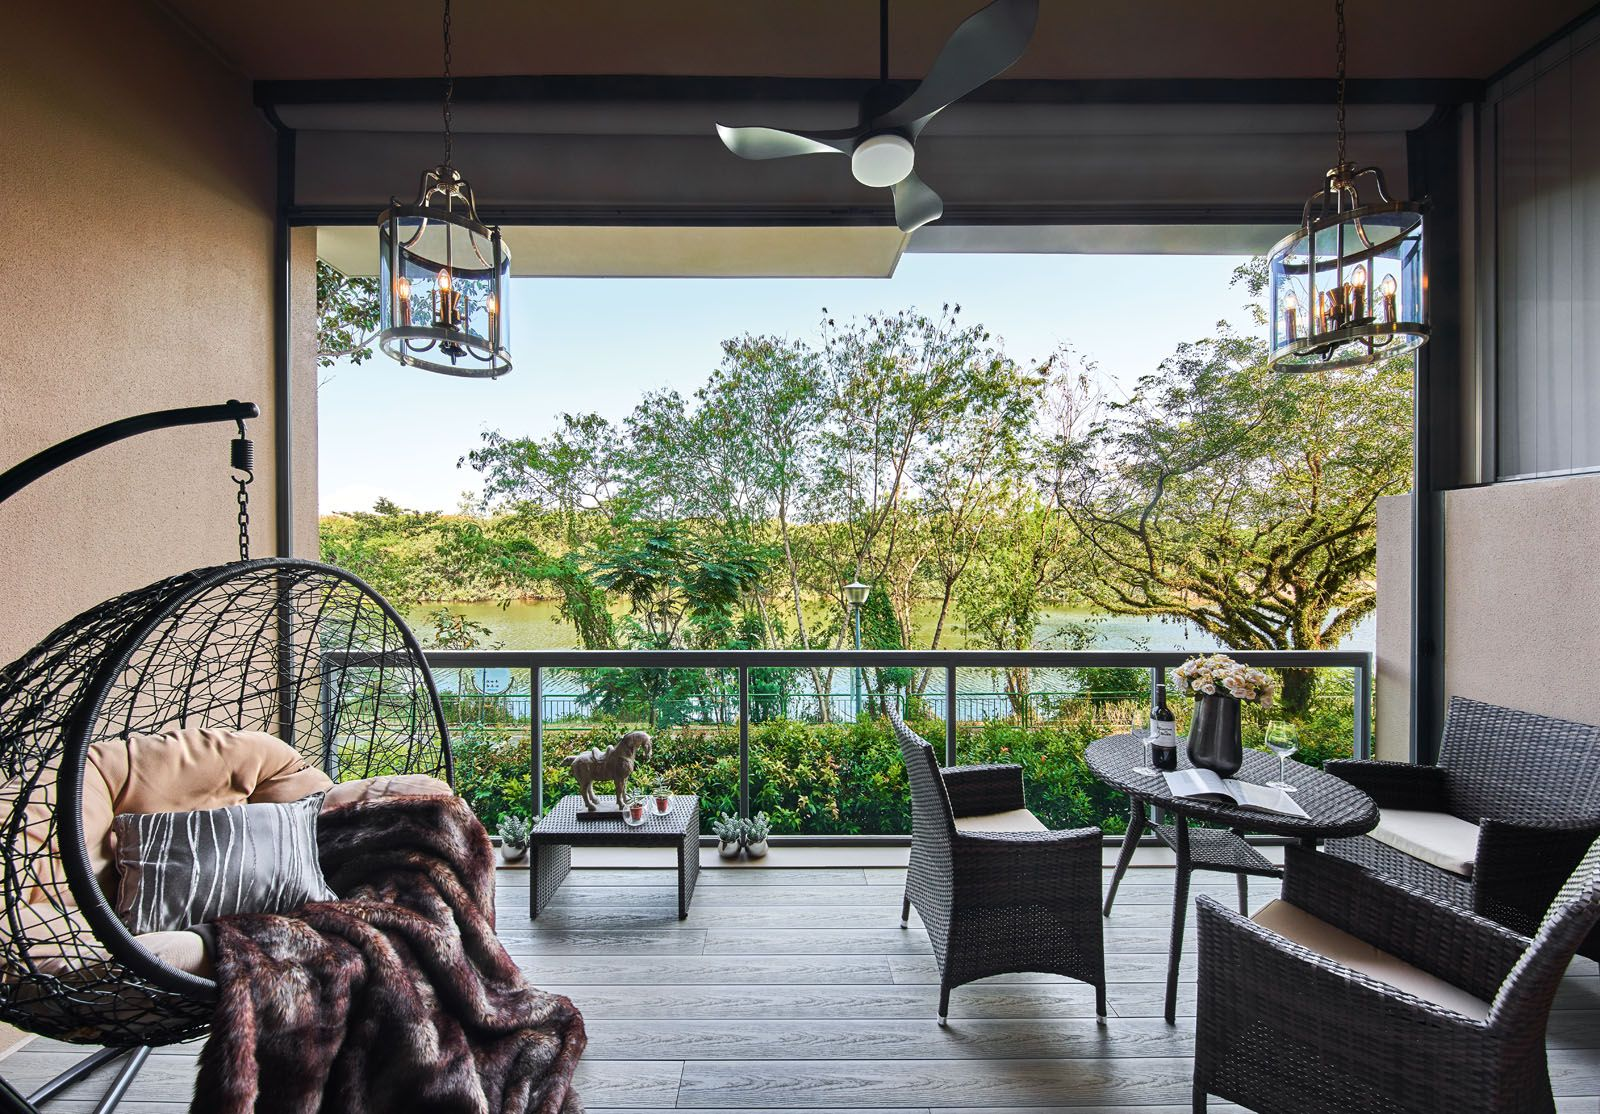 The outdoor terrace is the family's preferred spot for breakfast